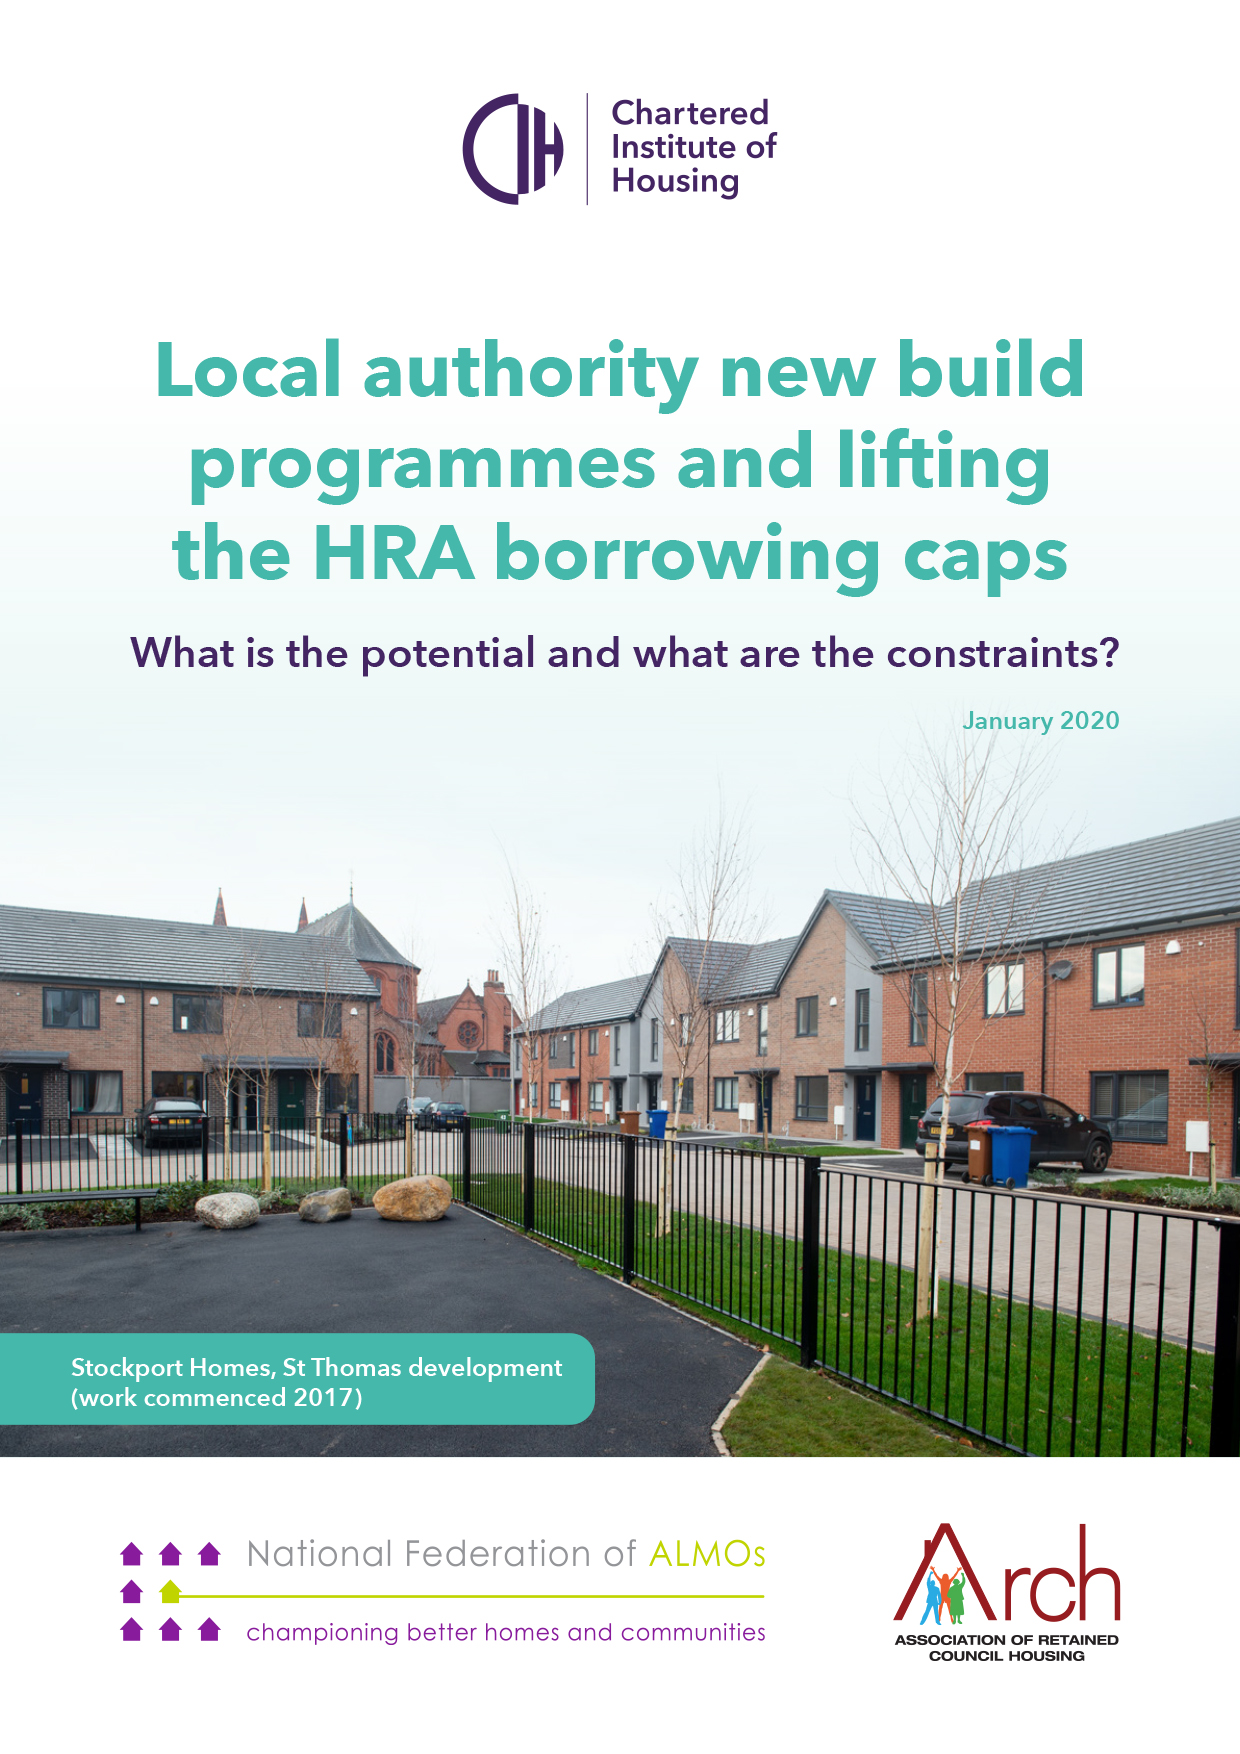 Whats stopping councils from building more houses?